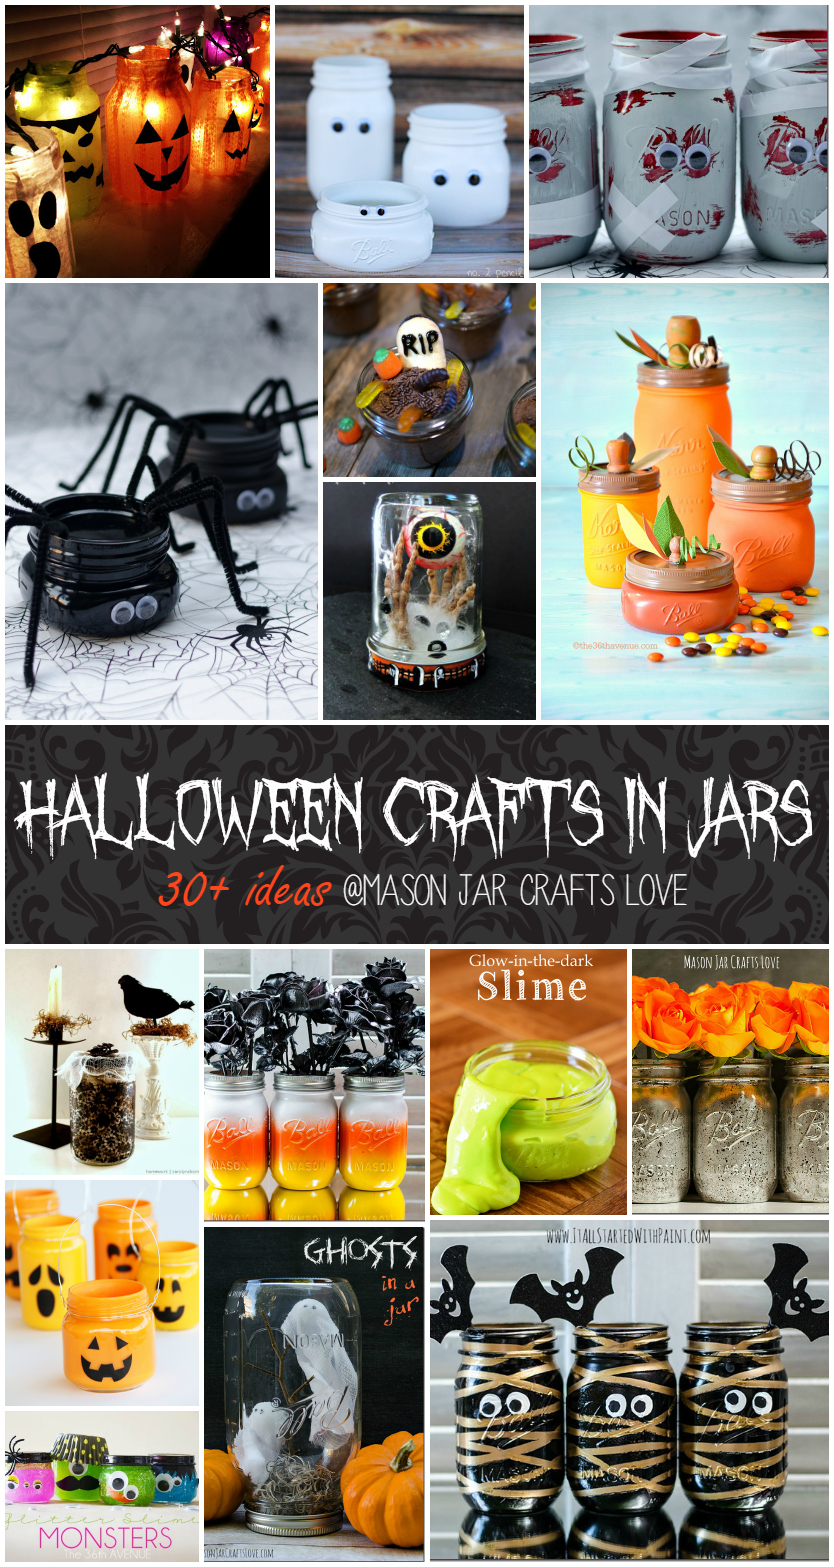 Mason Jar Craft Ideas for Halloween